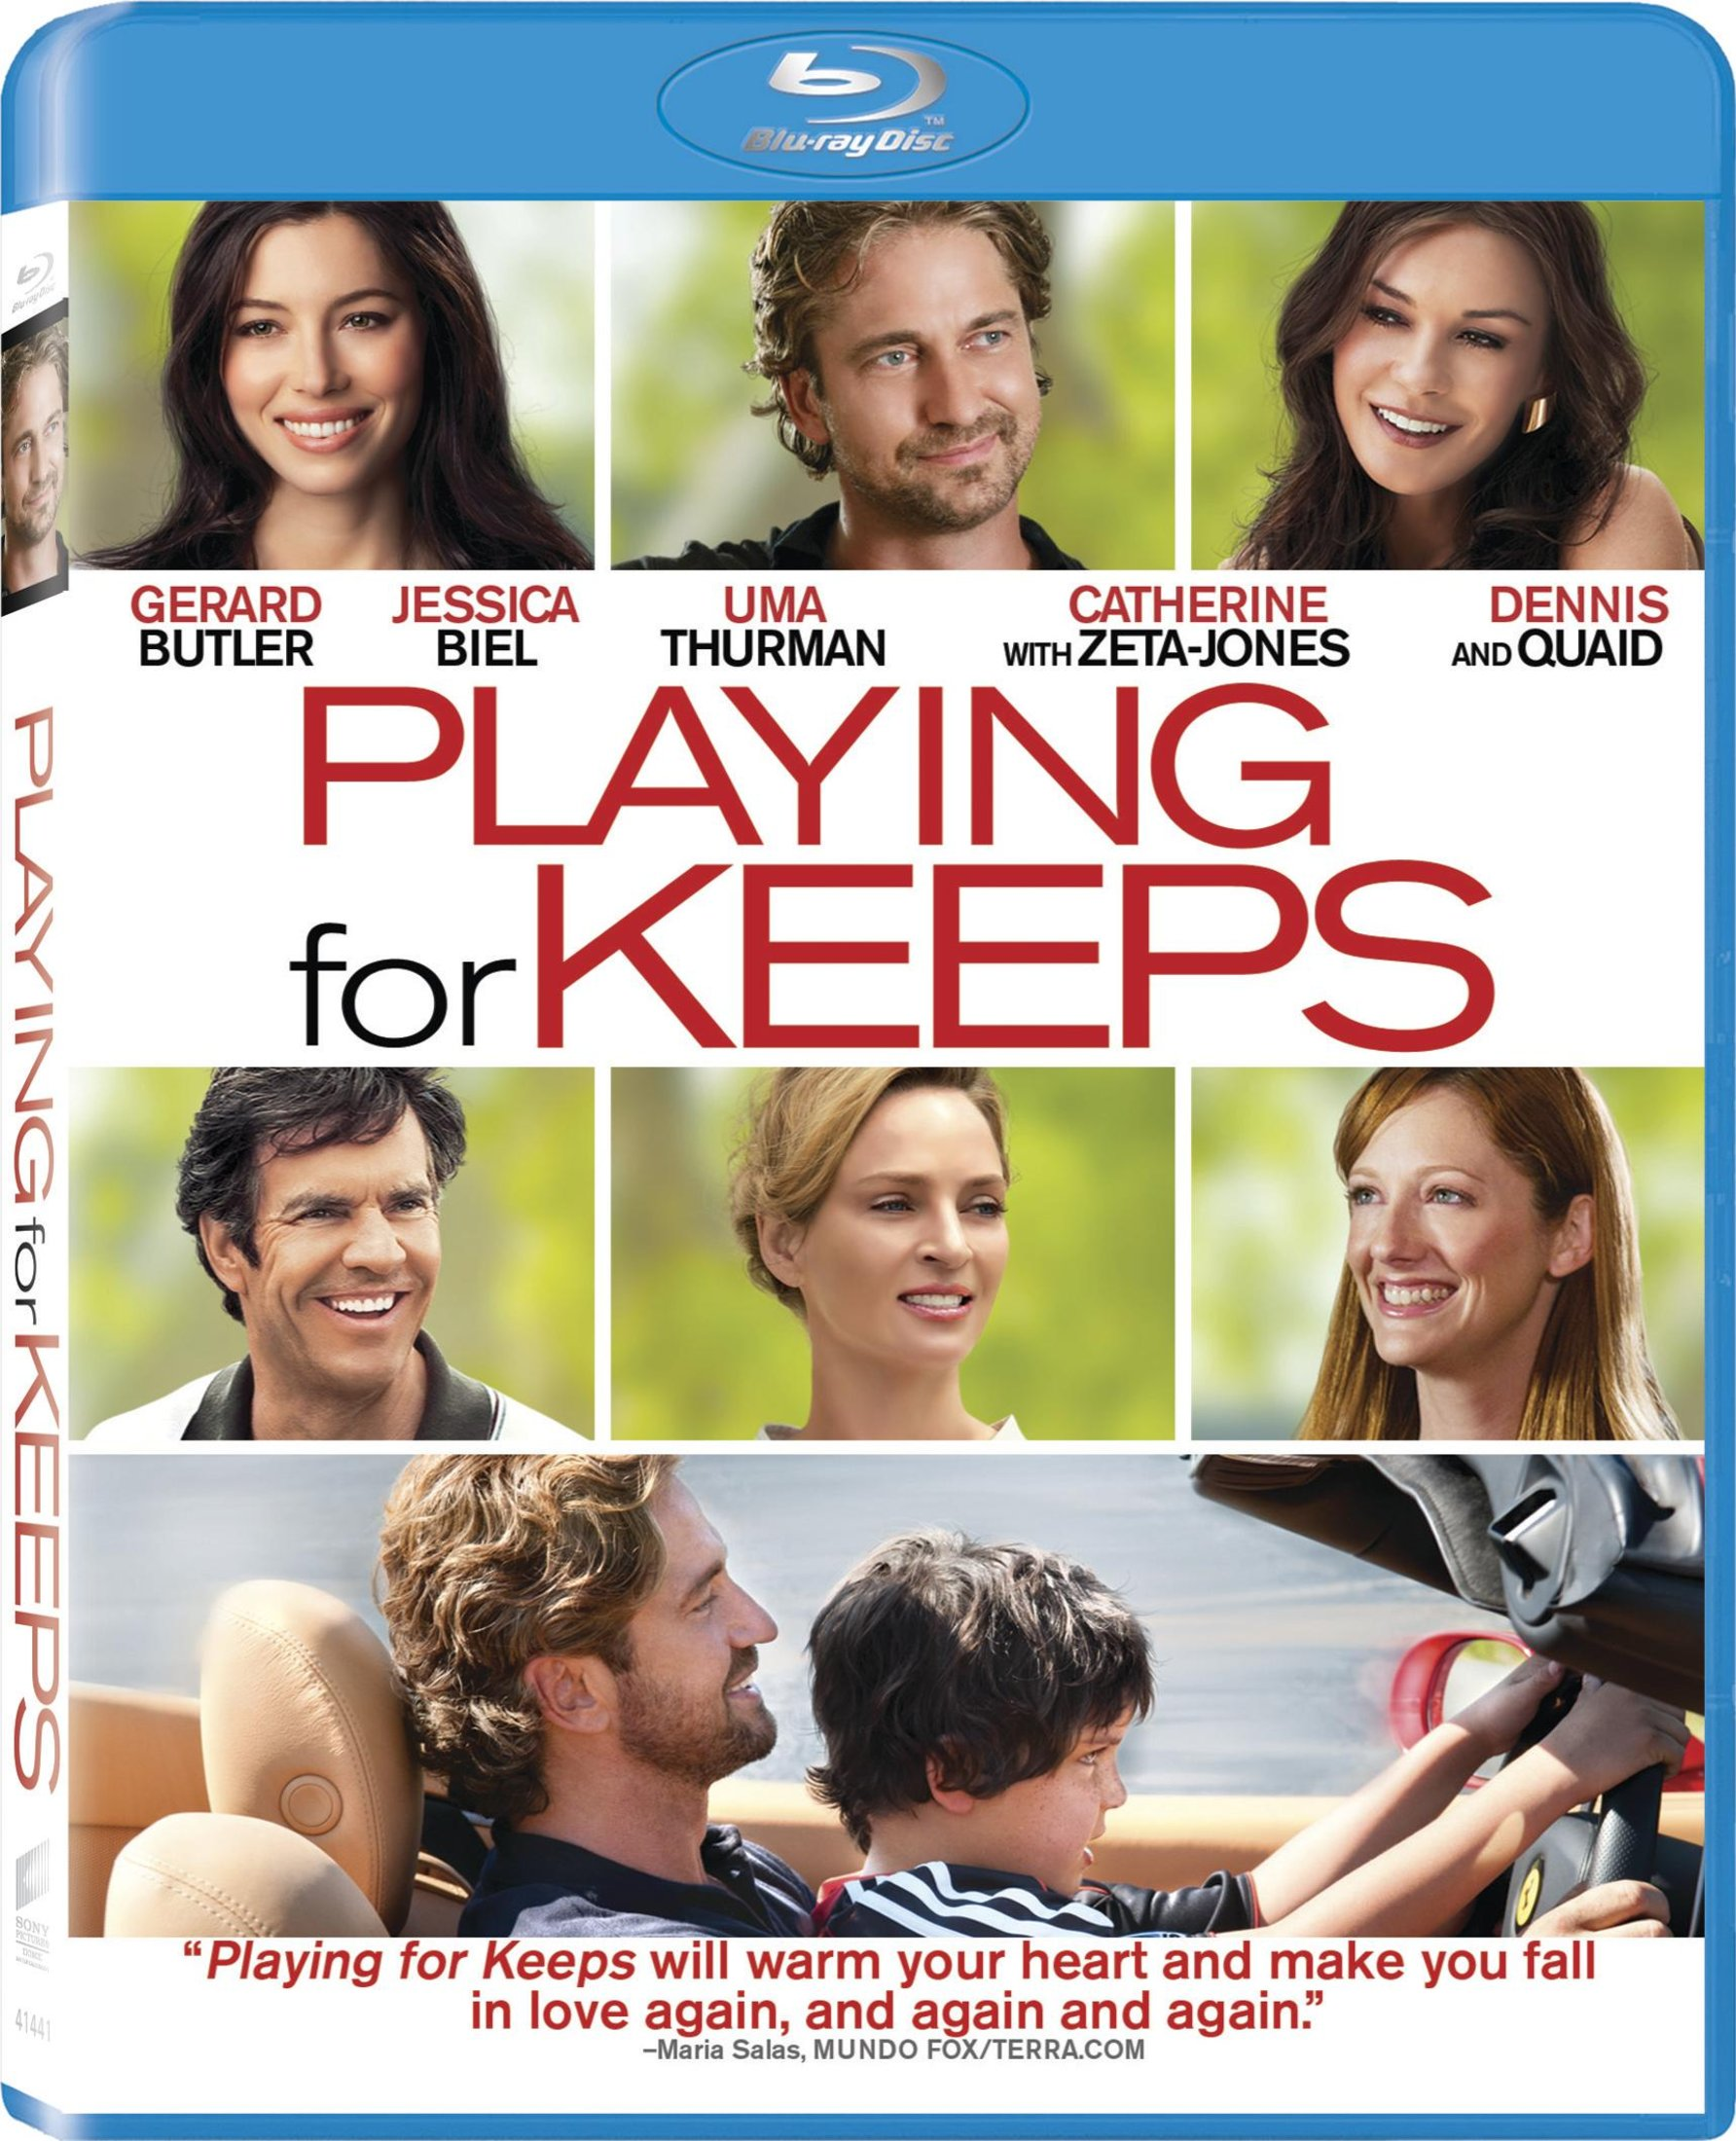 Enter to WIN the Awesome Movie, Playing for Keeps on DVD